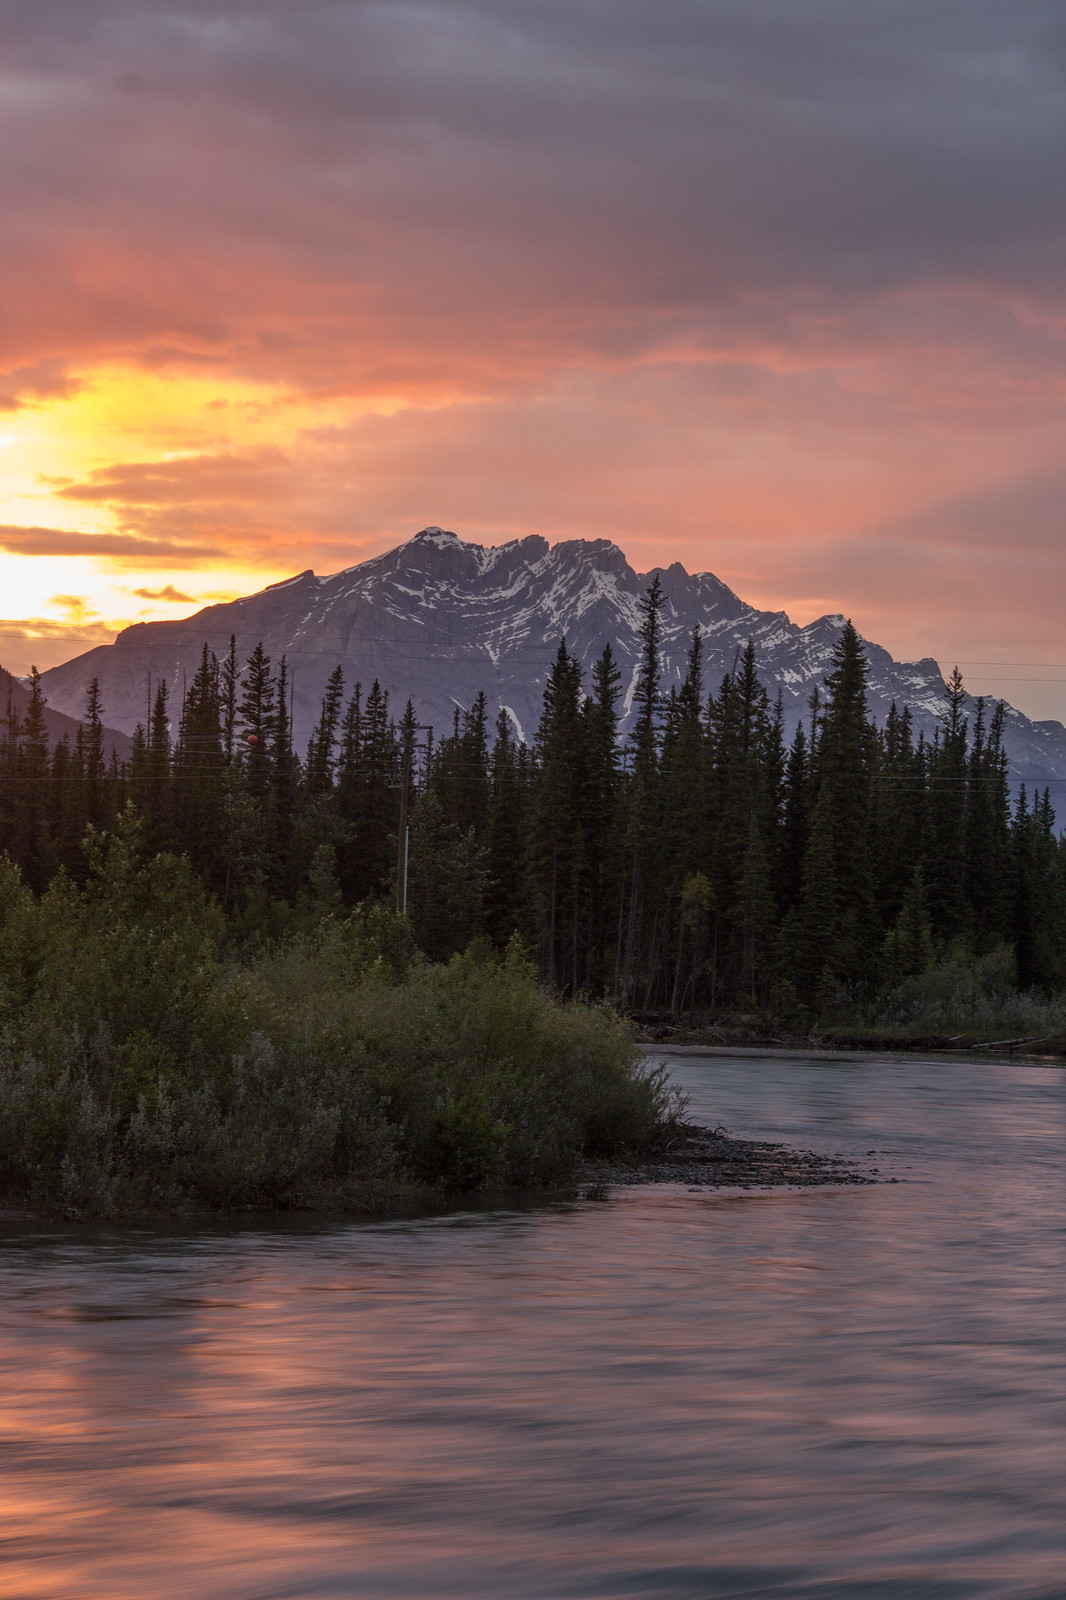 Sunset over Cascade Mountain from the Bow River Loop, Canmore